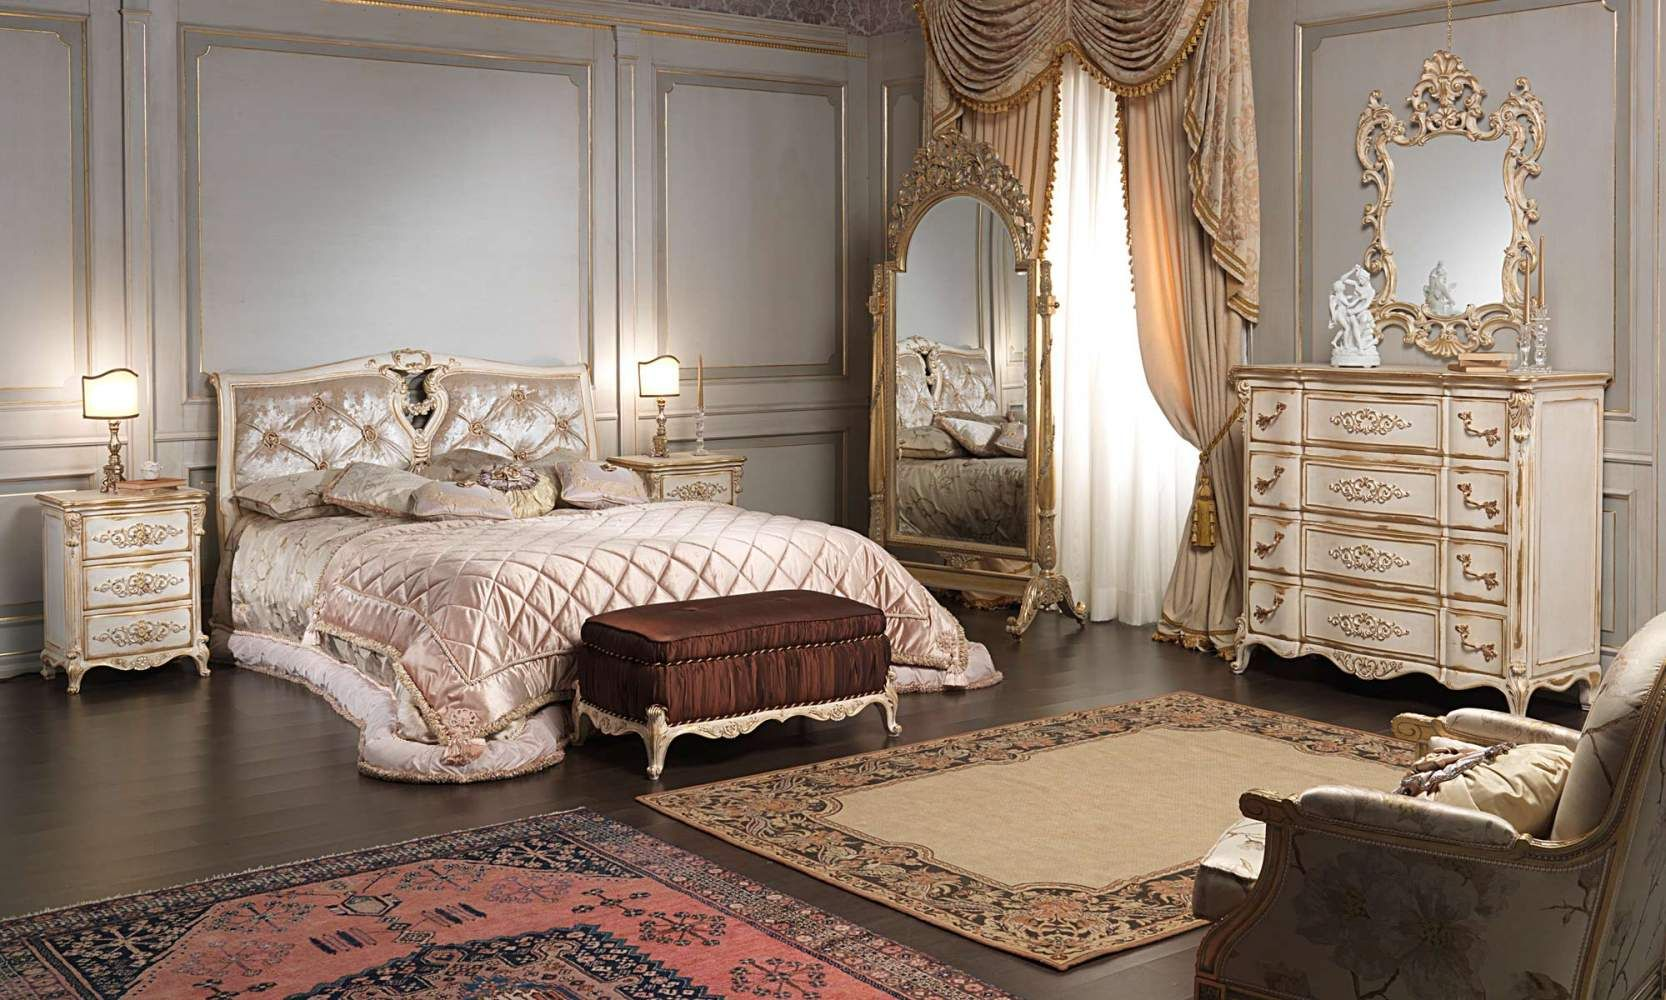 Clic Louis Xvi Bedroom Bed Padded Bench Chest Of